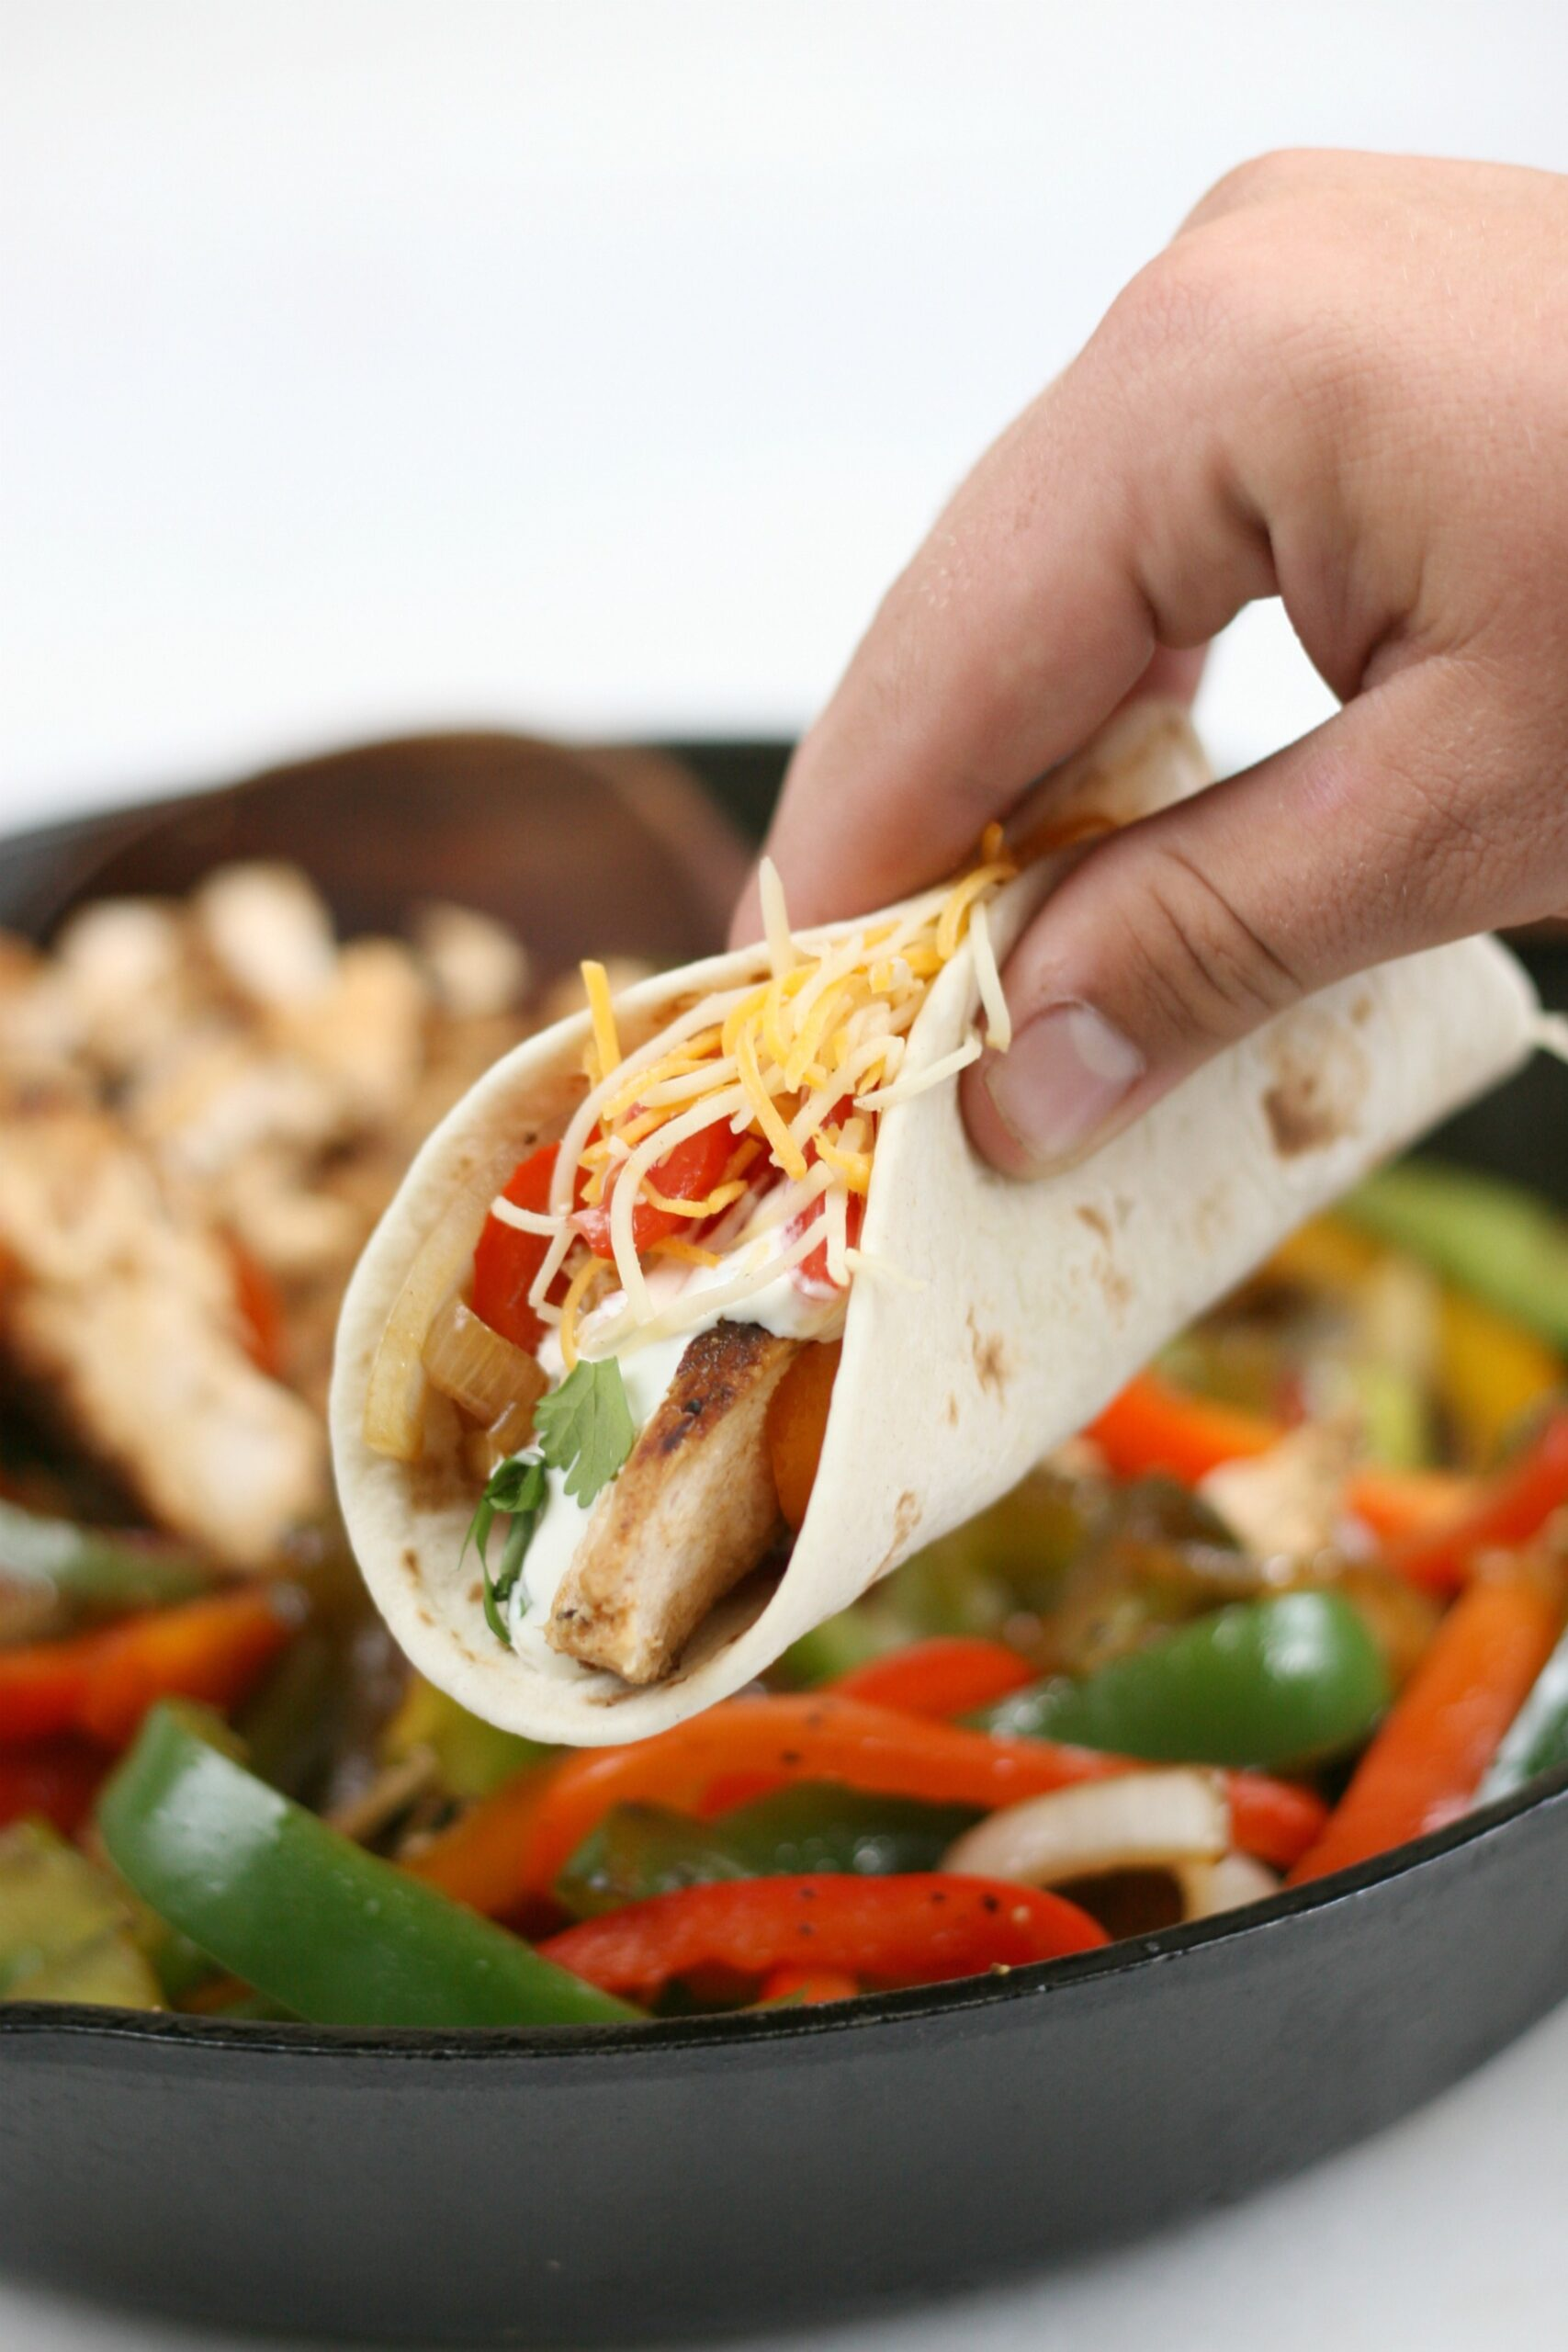 Chicken fajitas with onions and peppers being hand held.